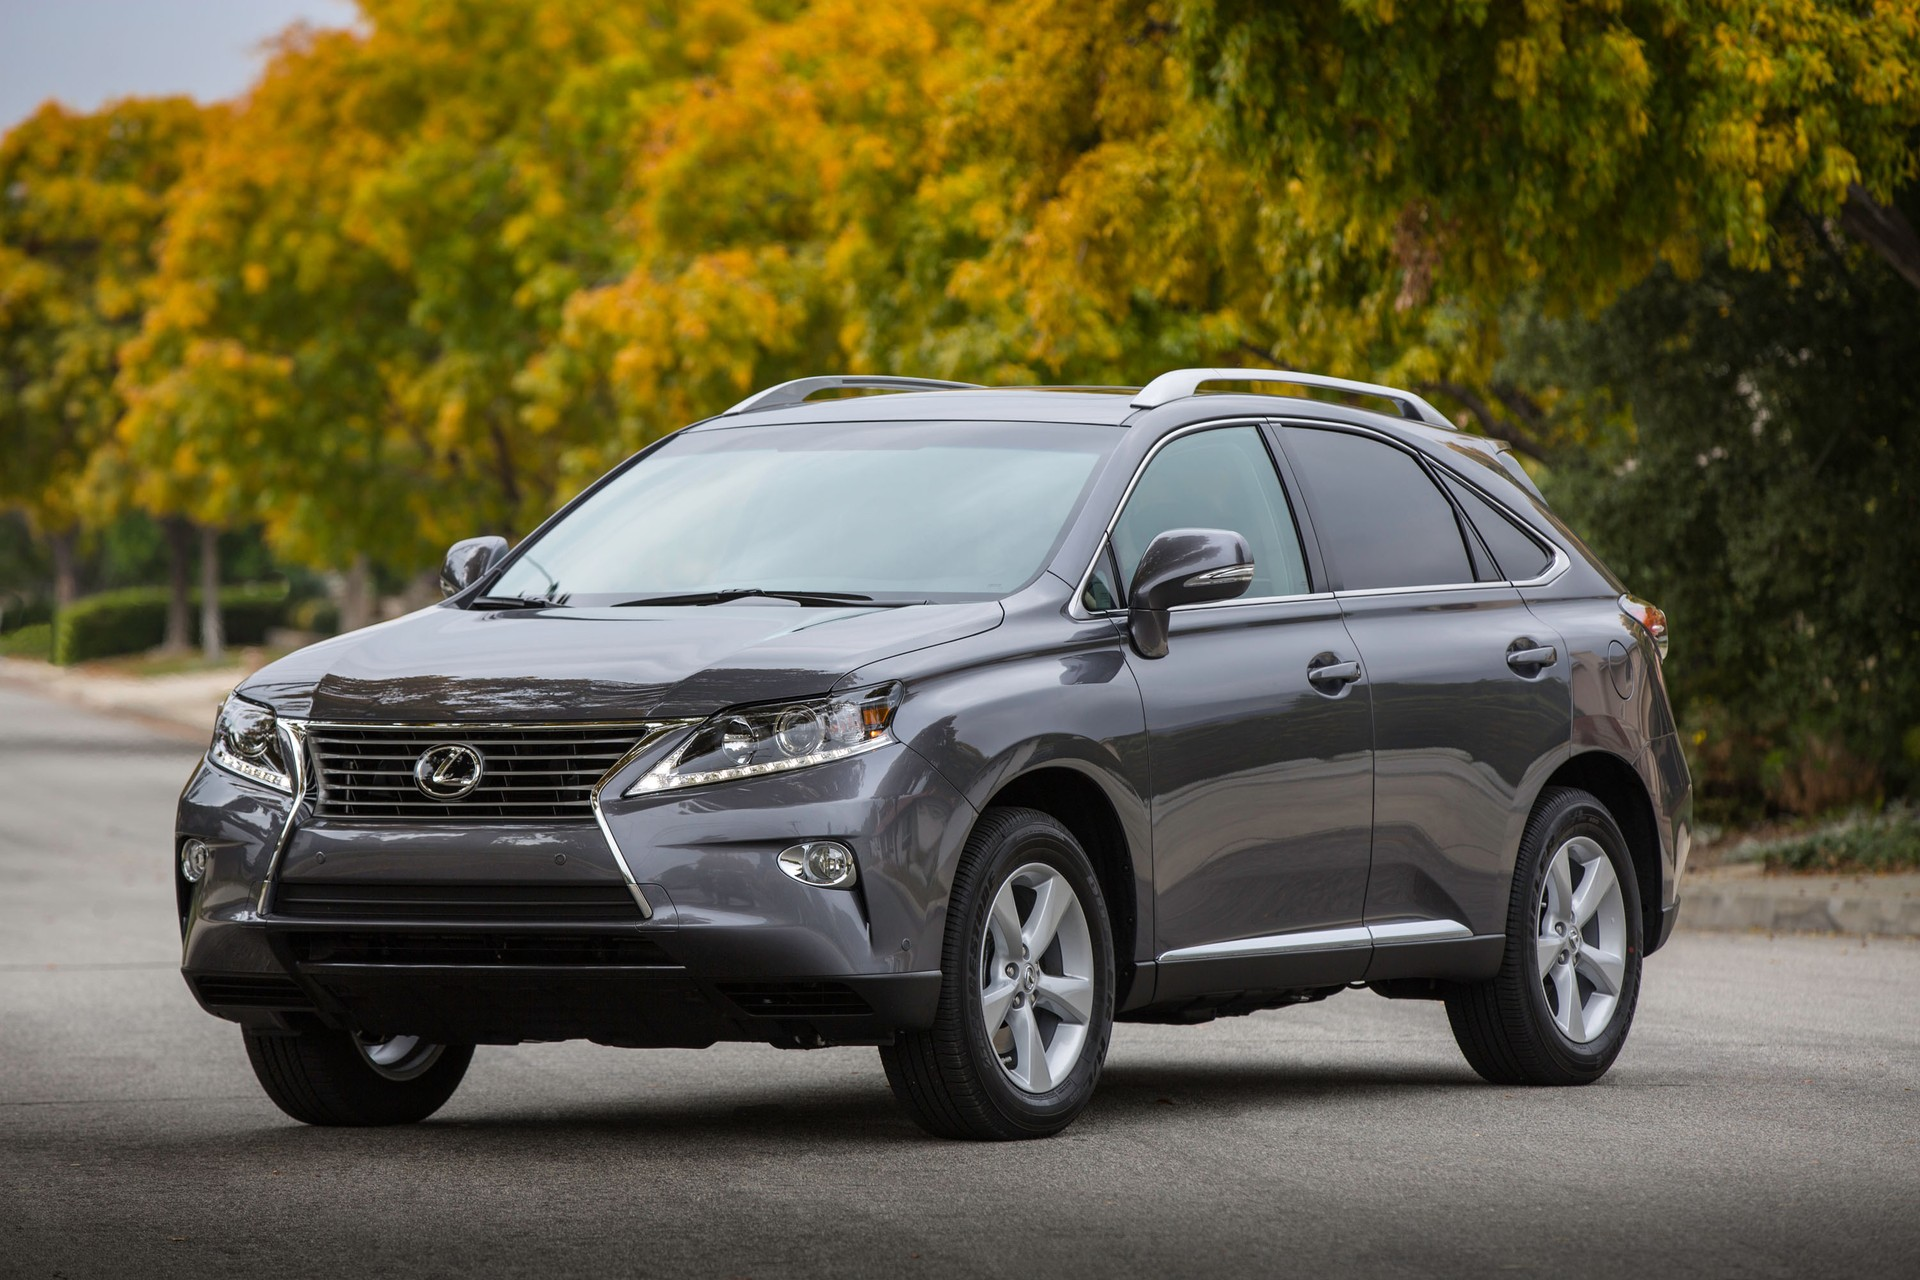 2015 lexus rx 350 review ratings specs prices and photos the car connection. Black Bedroom Furniture Sets. Home Design Ideas